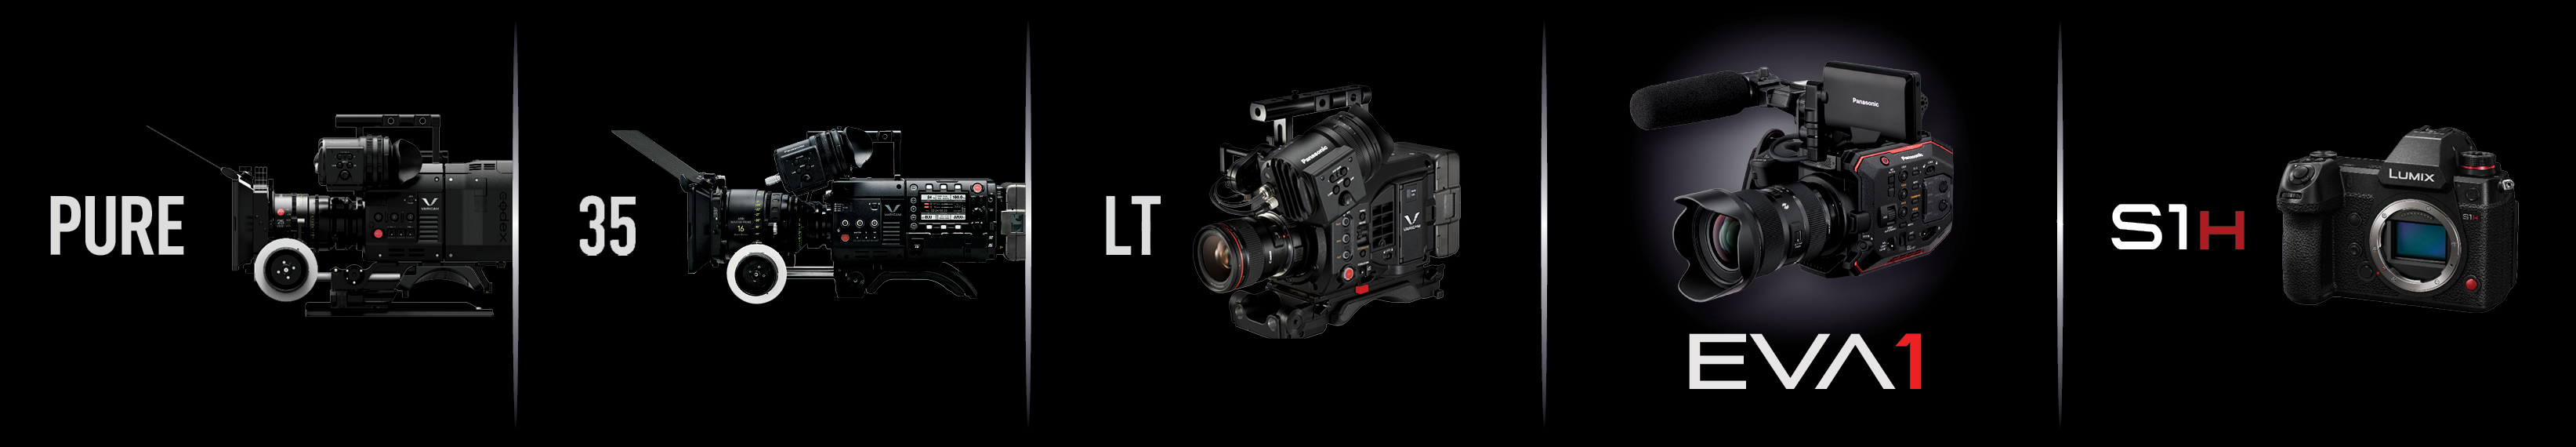 Panasonic netflix approved cameras for cinema